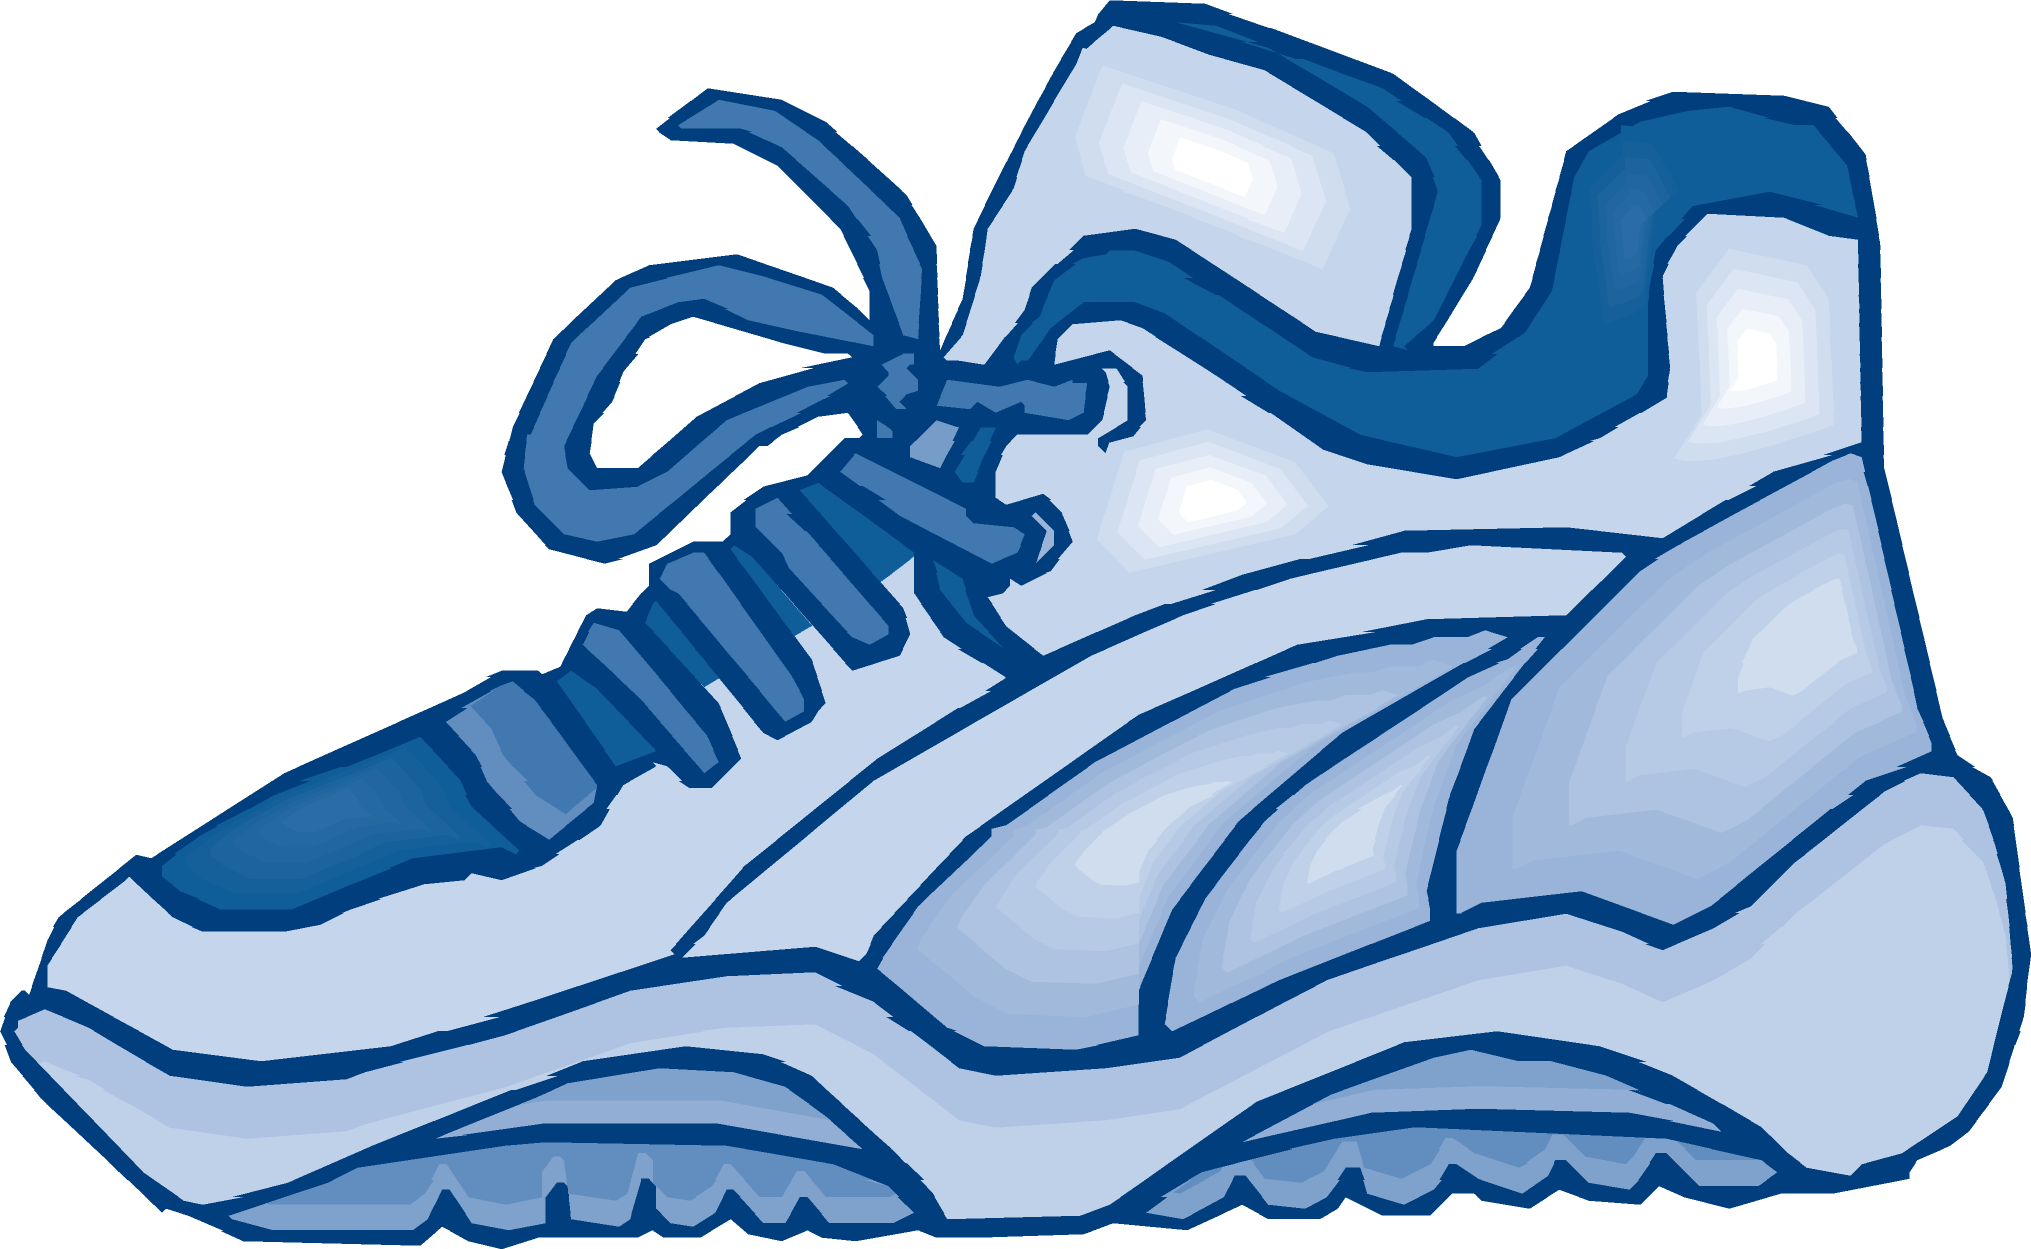 Sneakers clipart #13